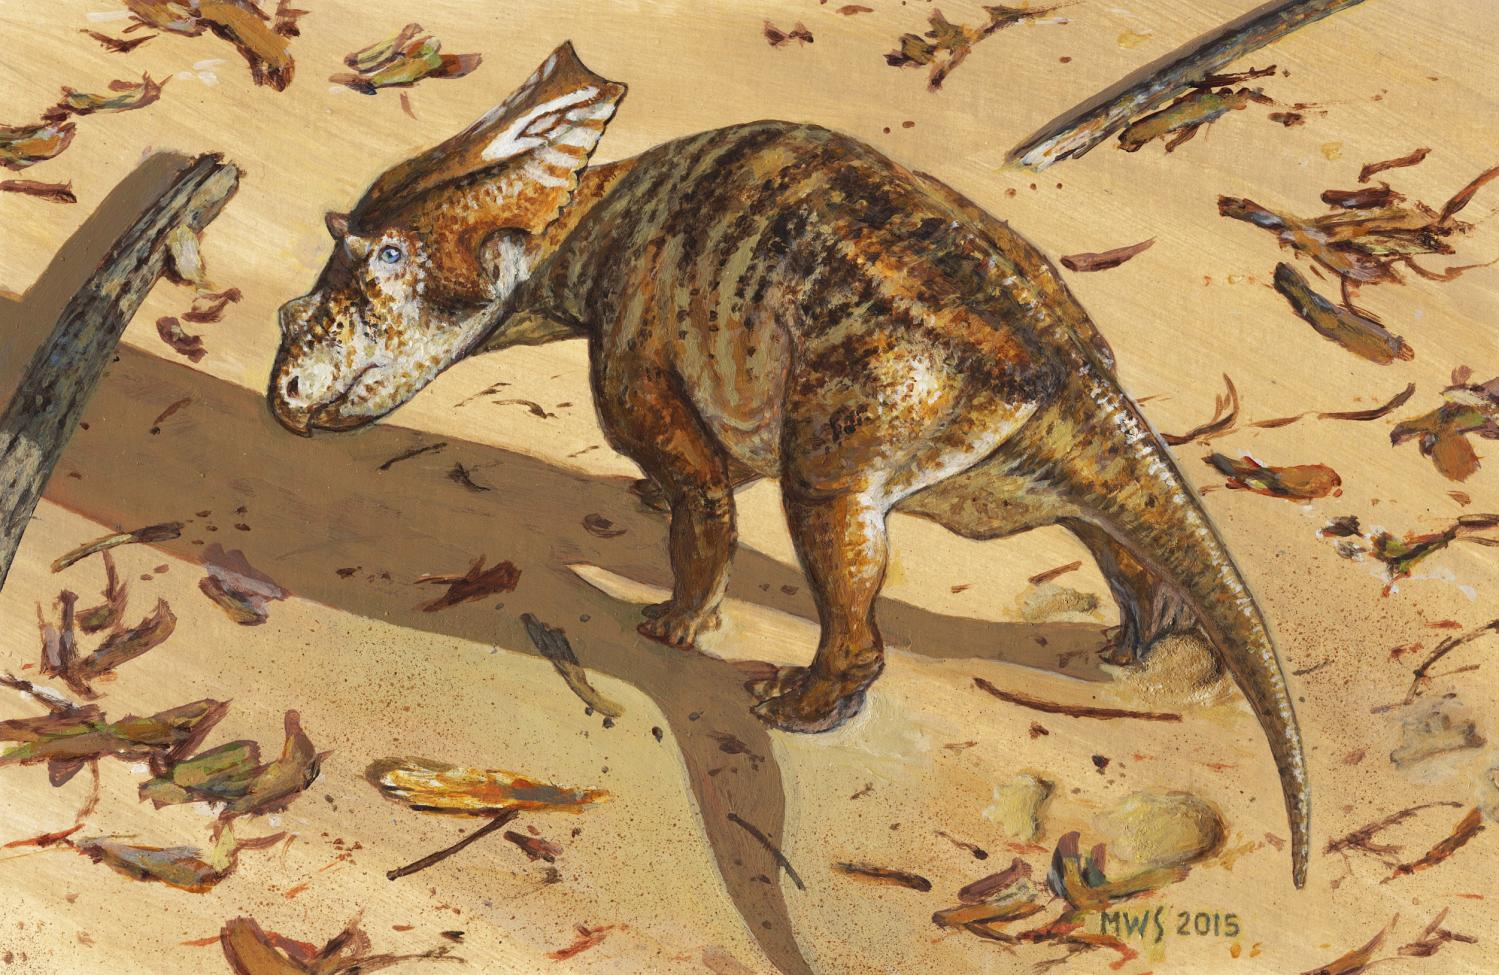 Paleontologists Discover Adorable Horned Dinosaur Baby